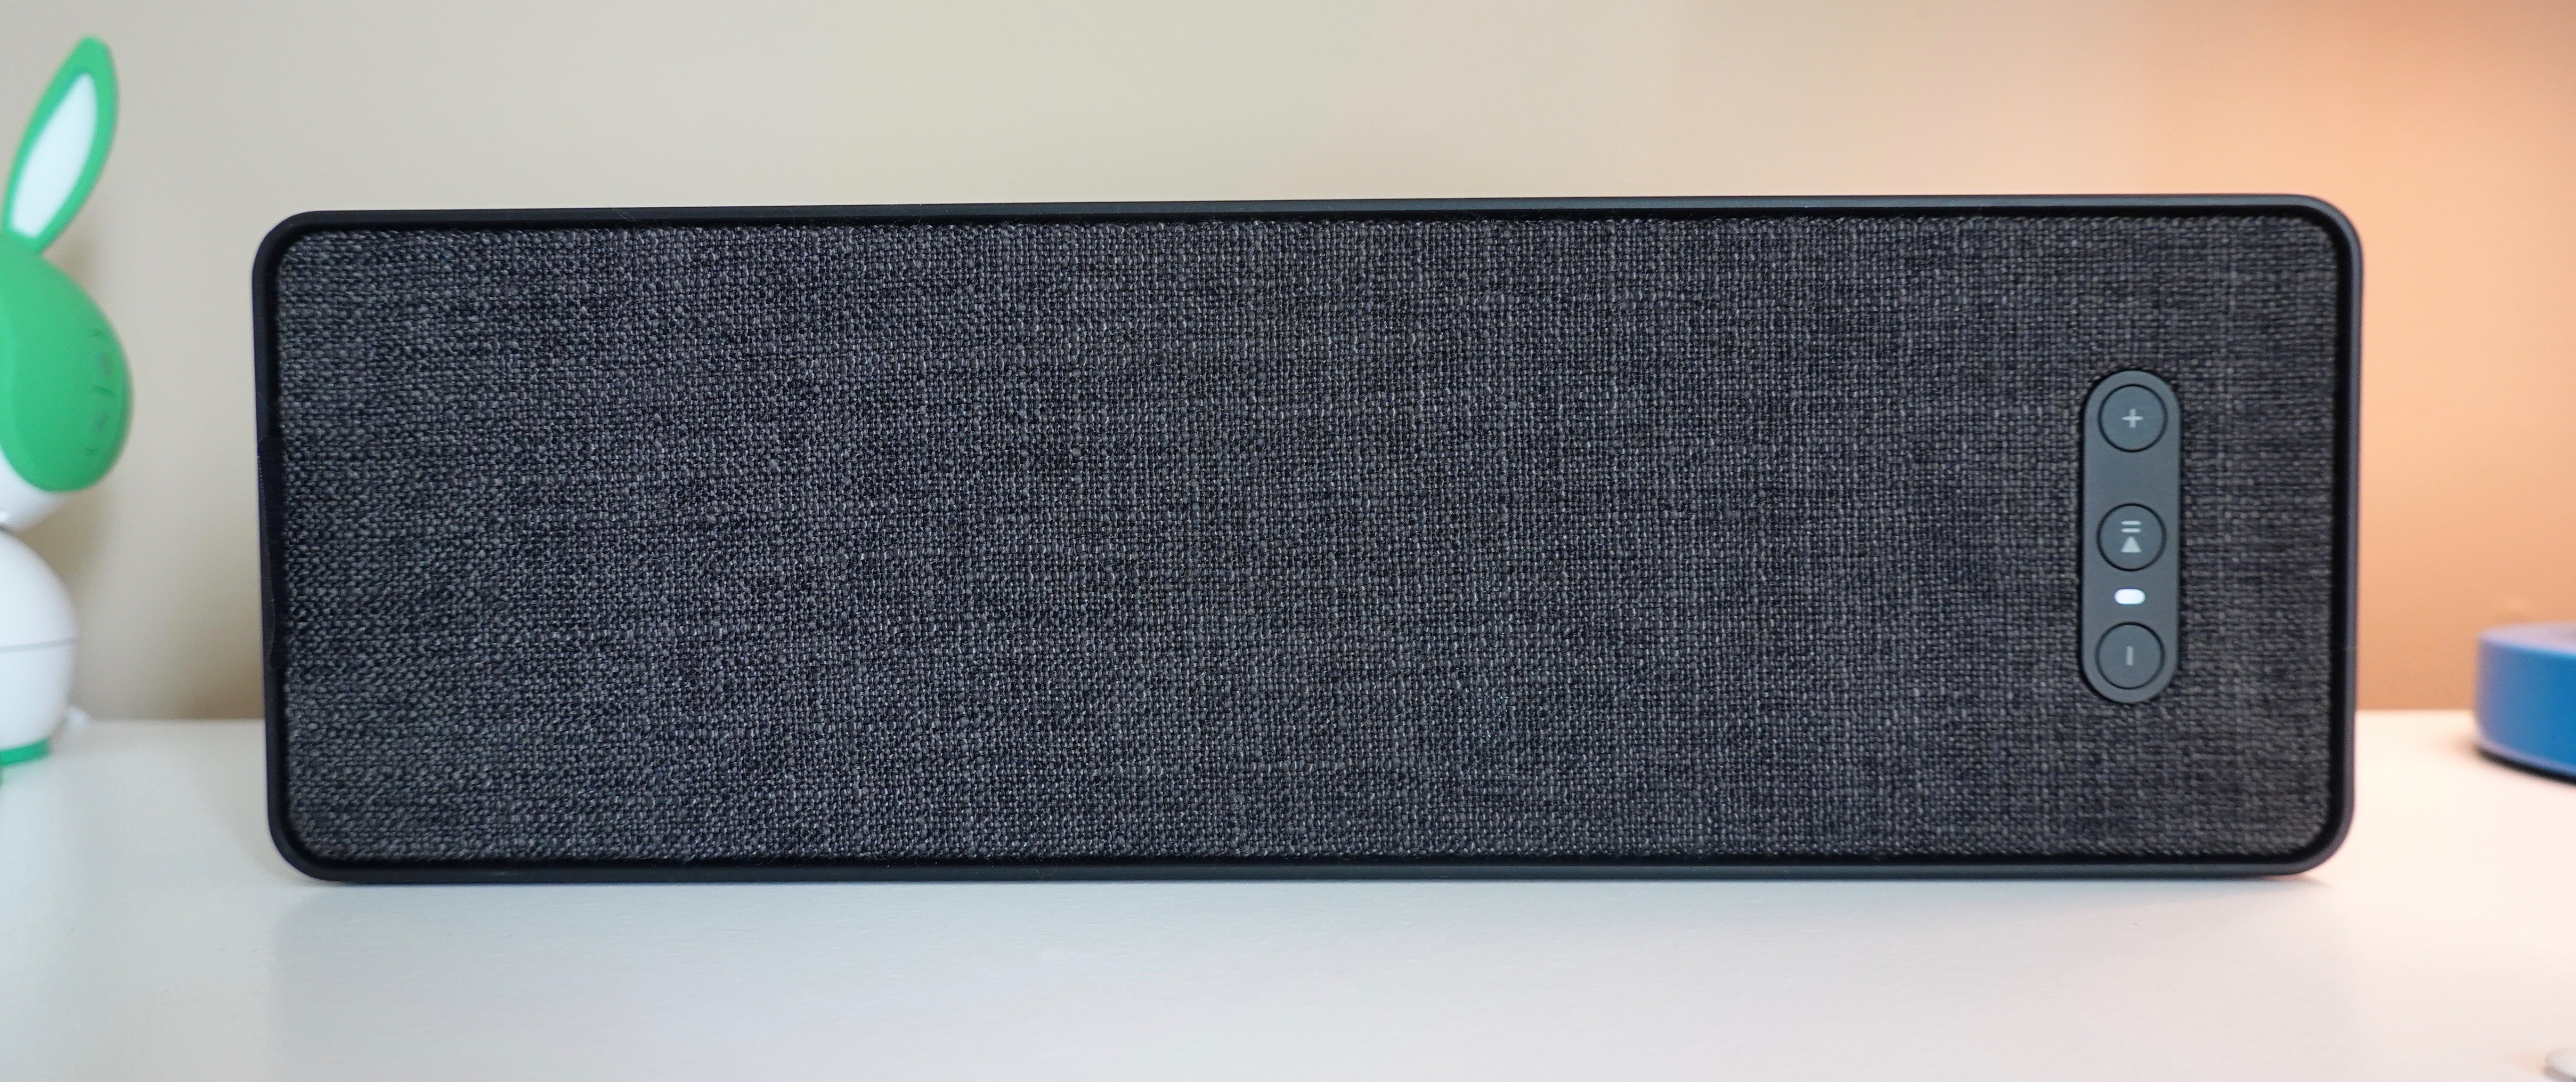 Review Sonos Ikea Speakers Double As Airplay 2 Furniture